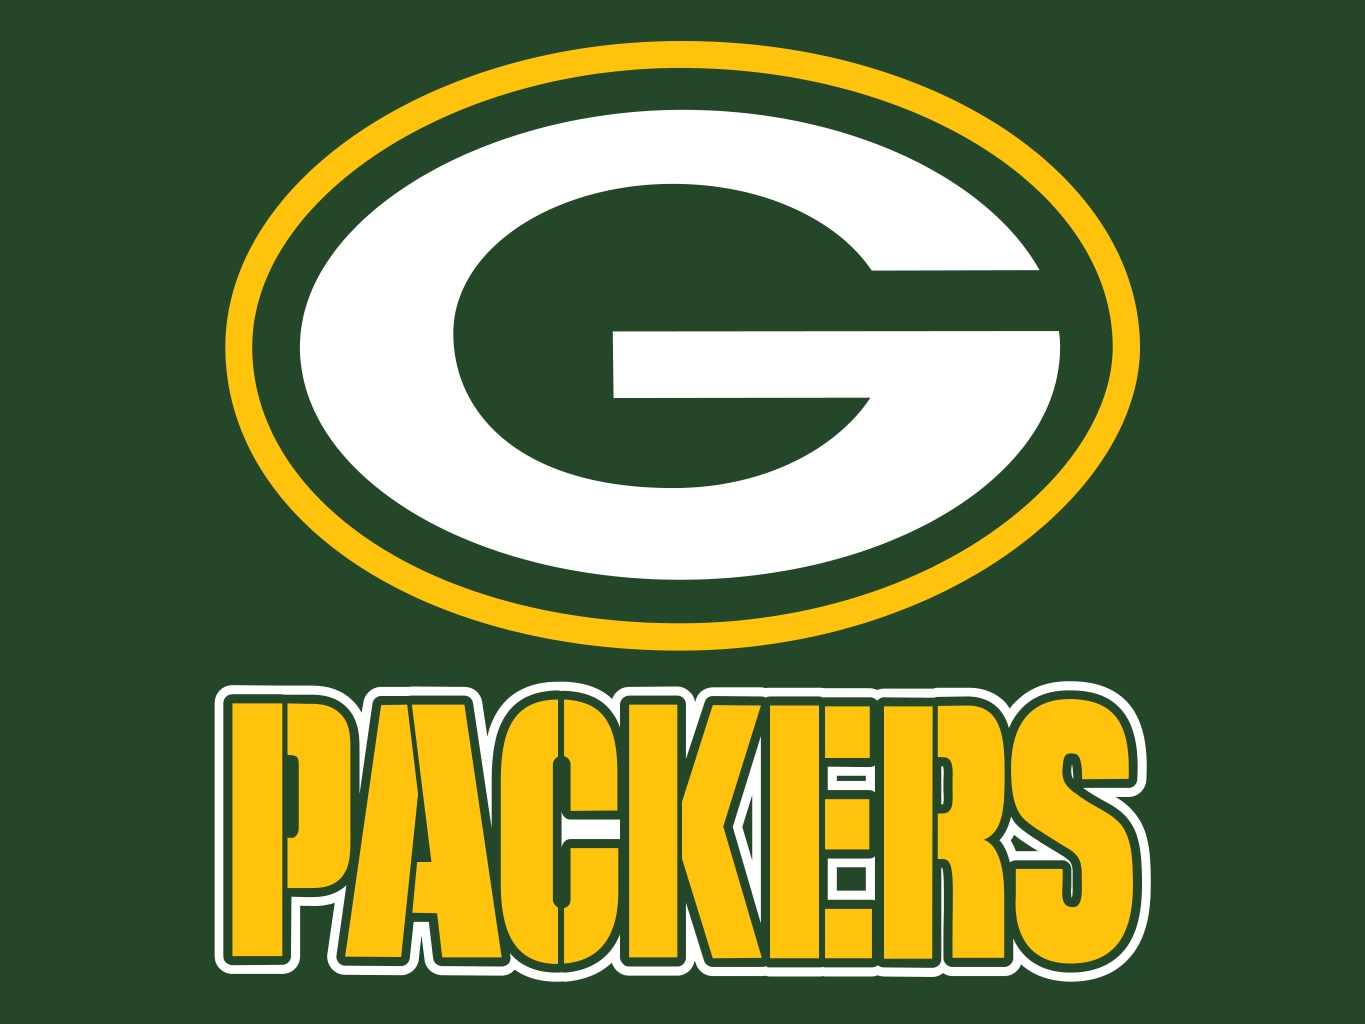 the official website of the Green Bay Packers - HD Wallpapers